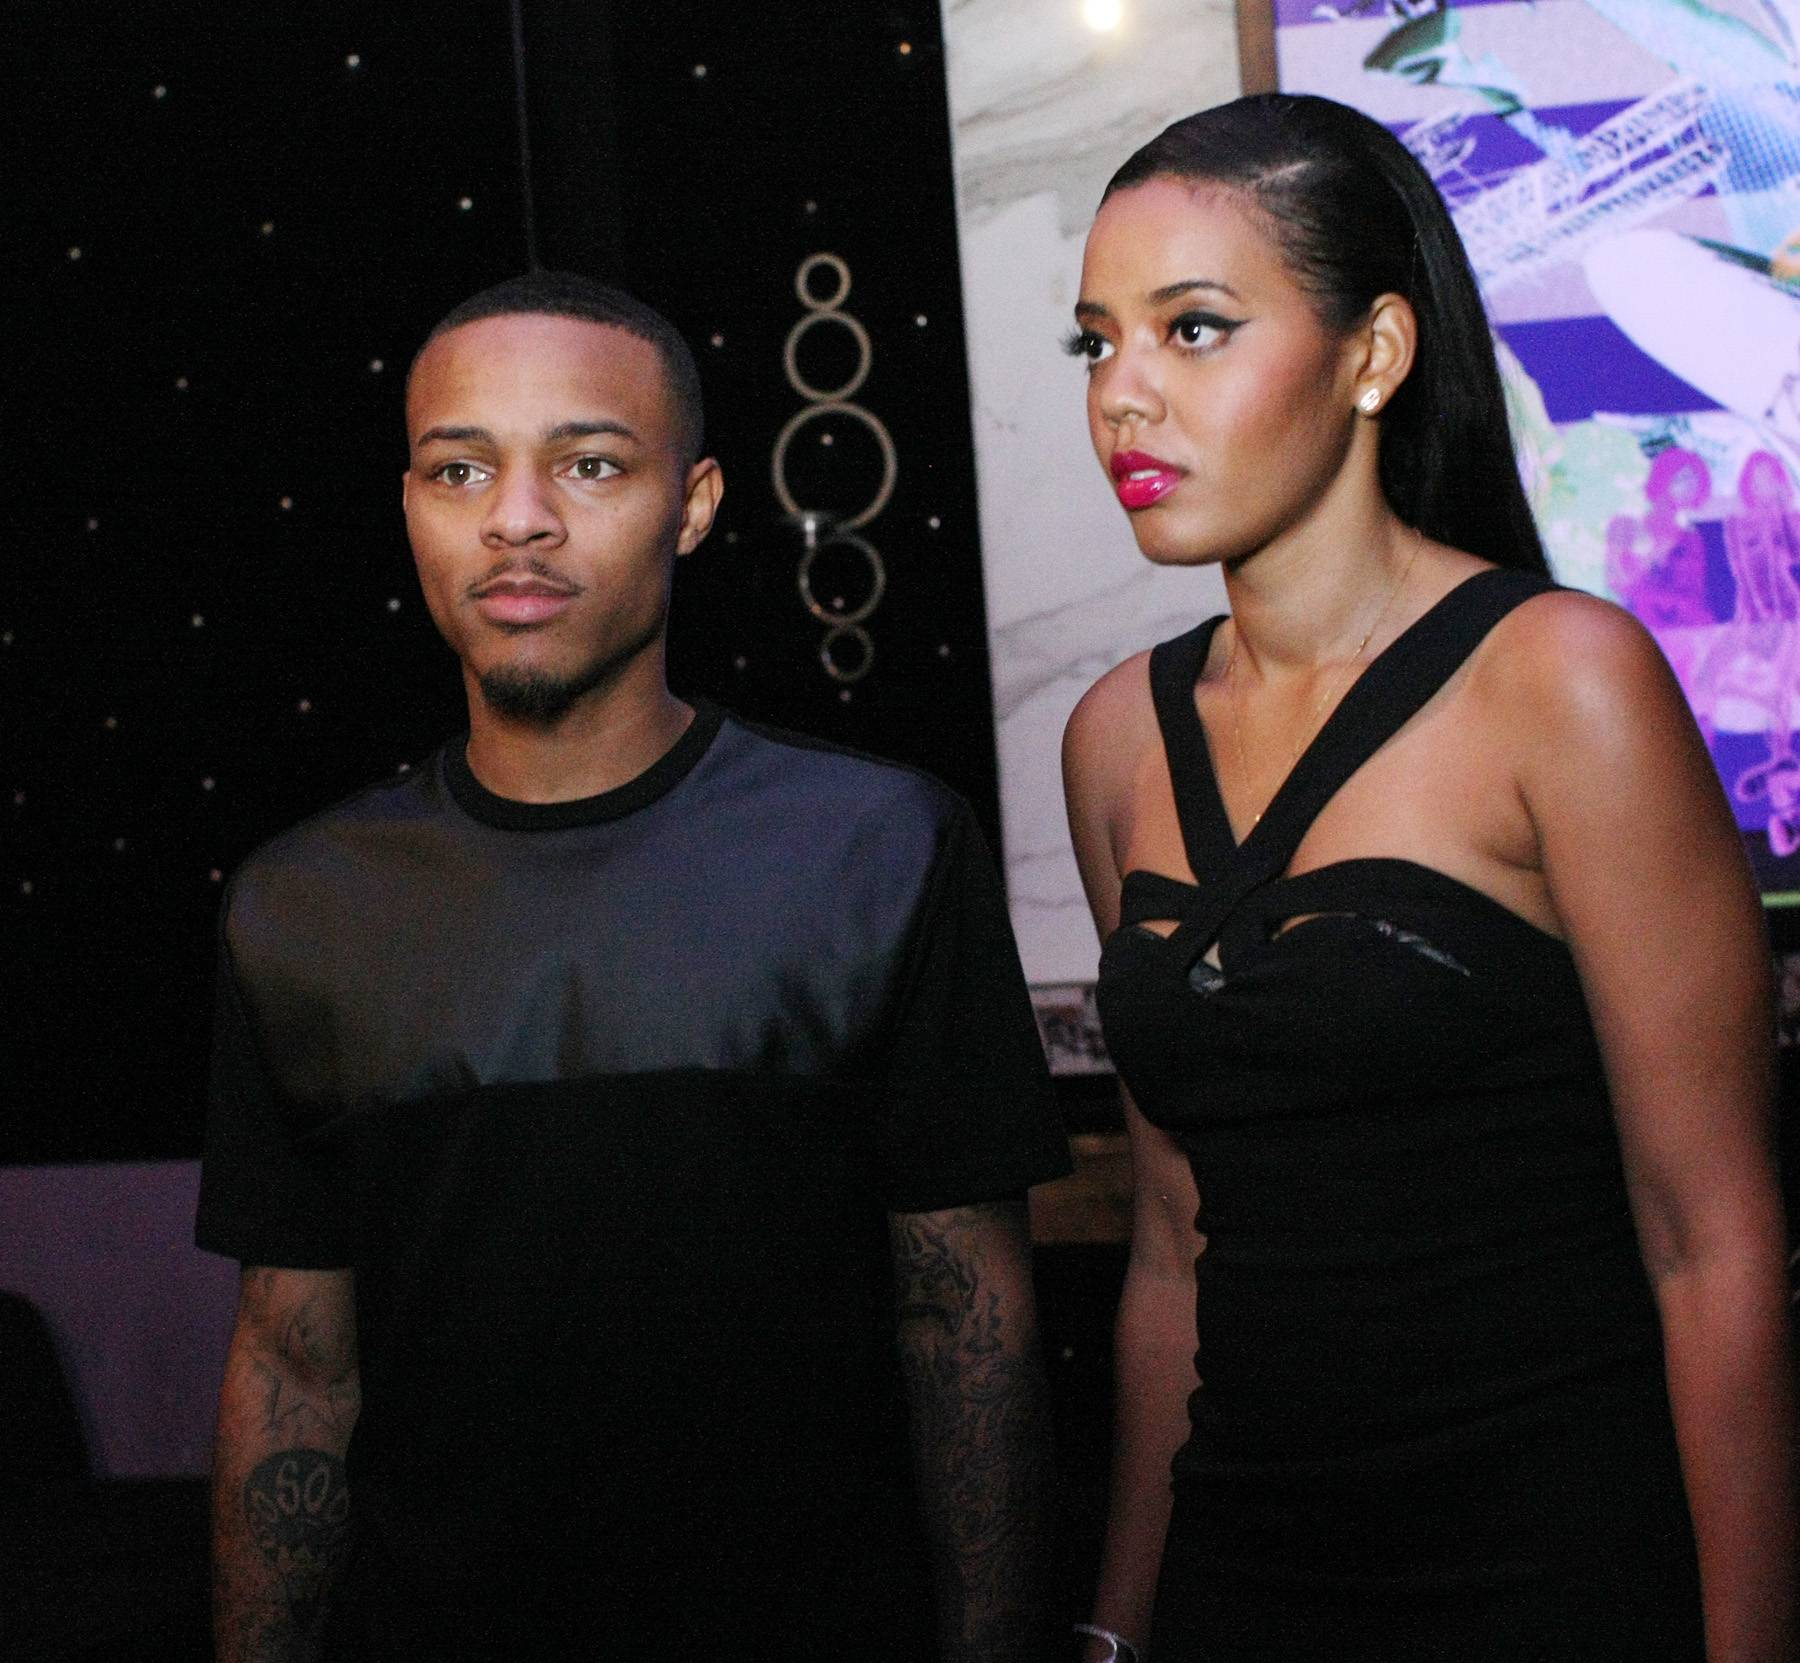 Focused - Hosts Angela Simmons and Bow Wow pay close attention for what to do next.(Photo: Bennett Raglin/BET/Getty Images for BET)